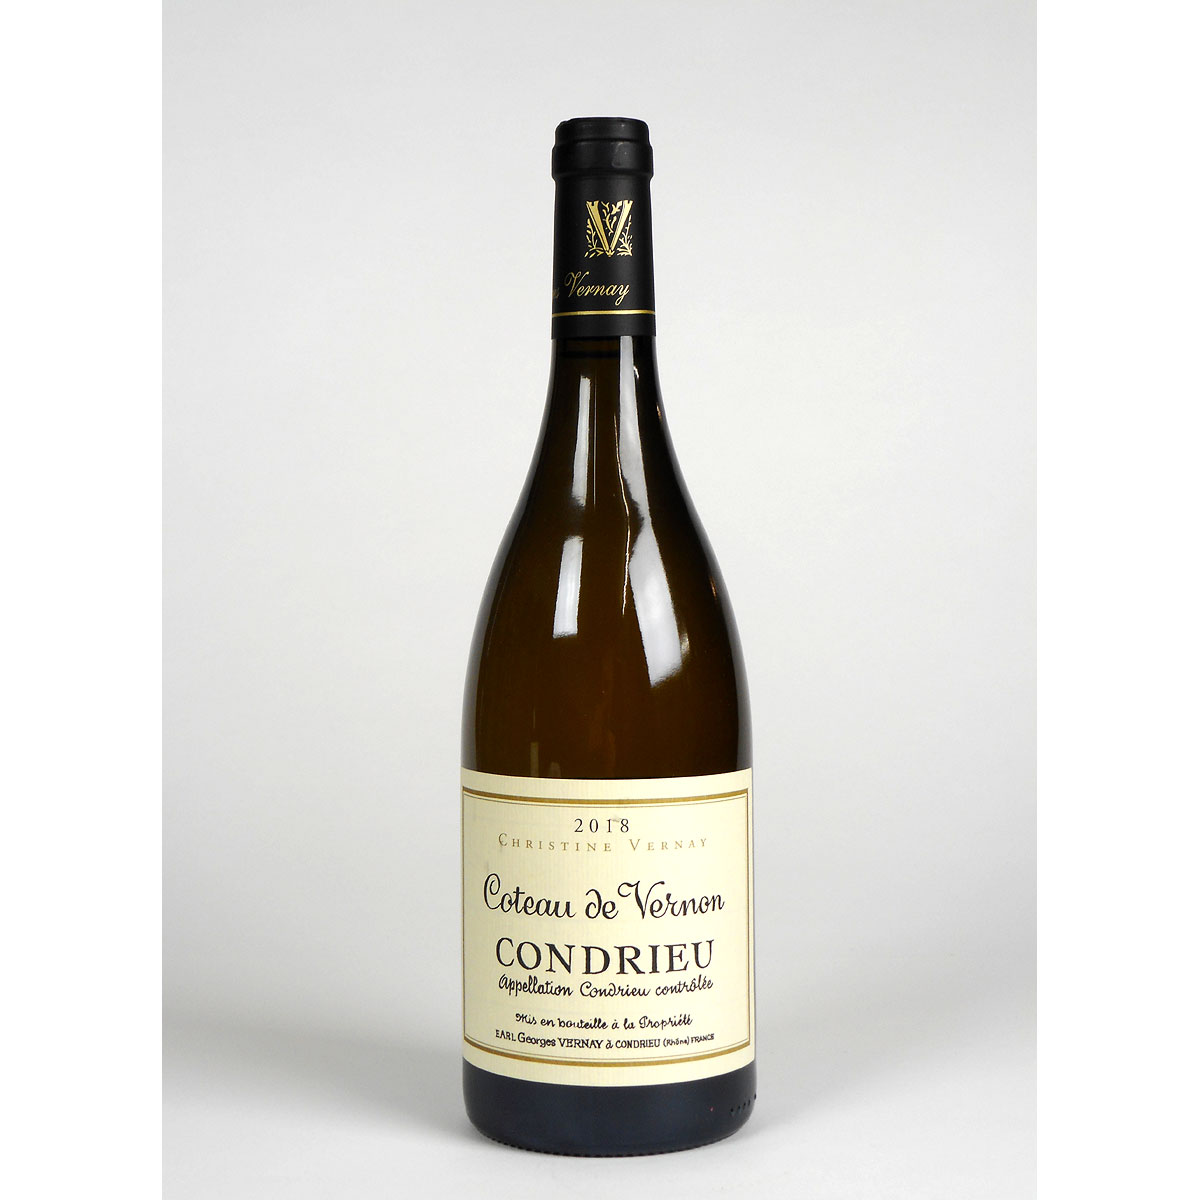 Condrieu: Domaine Georges Vernay 'Coteau de Vernon' 2018 - Wine Bottle